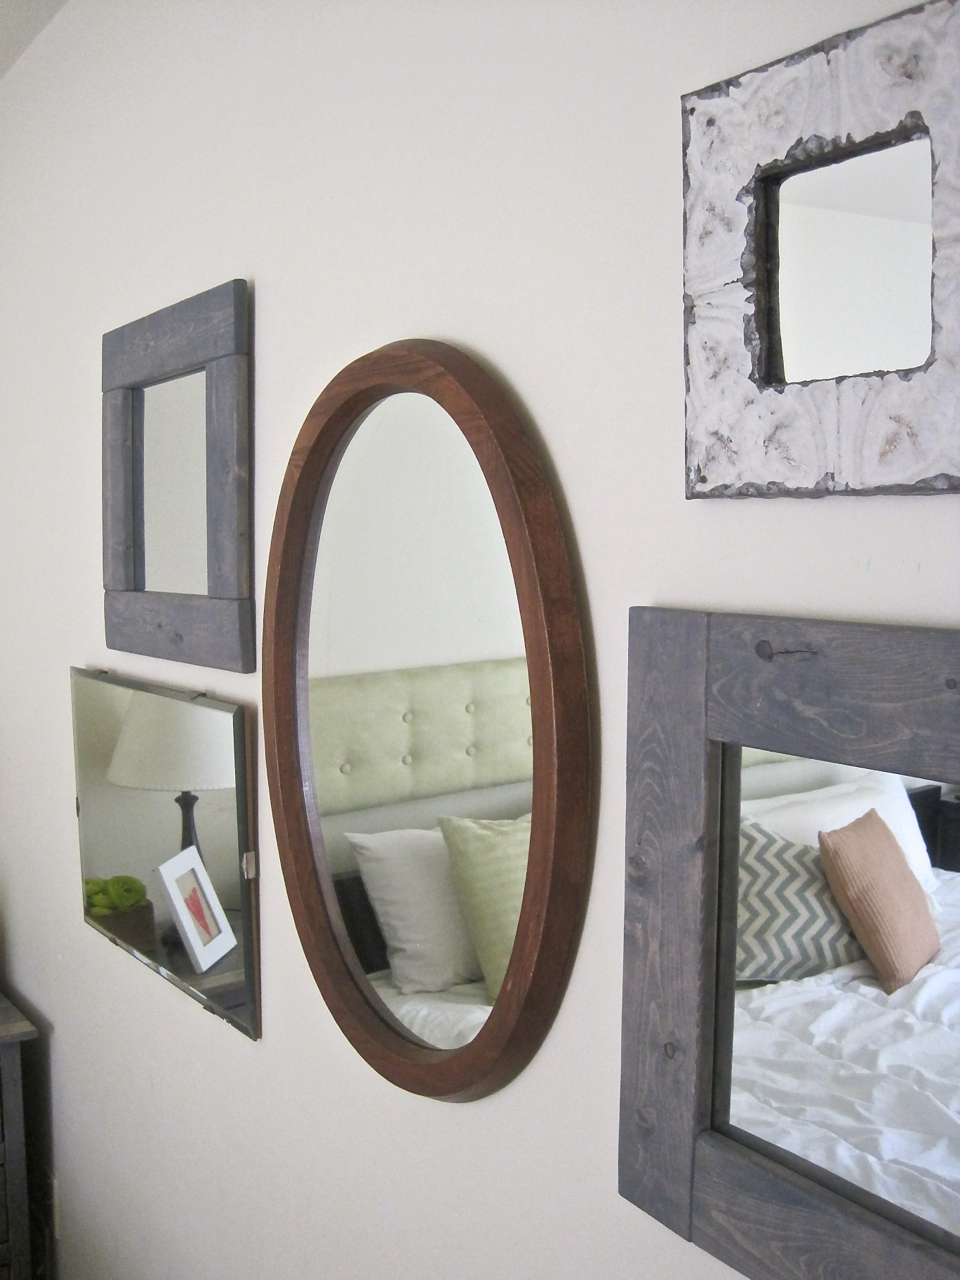 The Project Lady Make Your Own Hanging Mirror Cheap And Simple